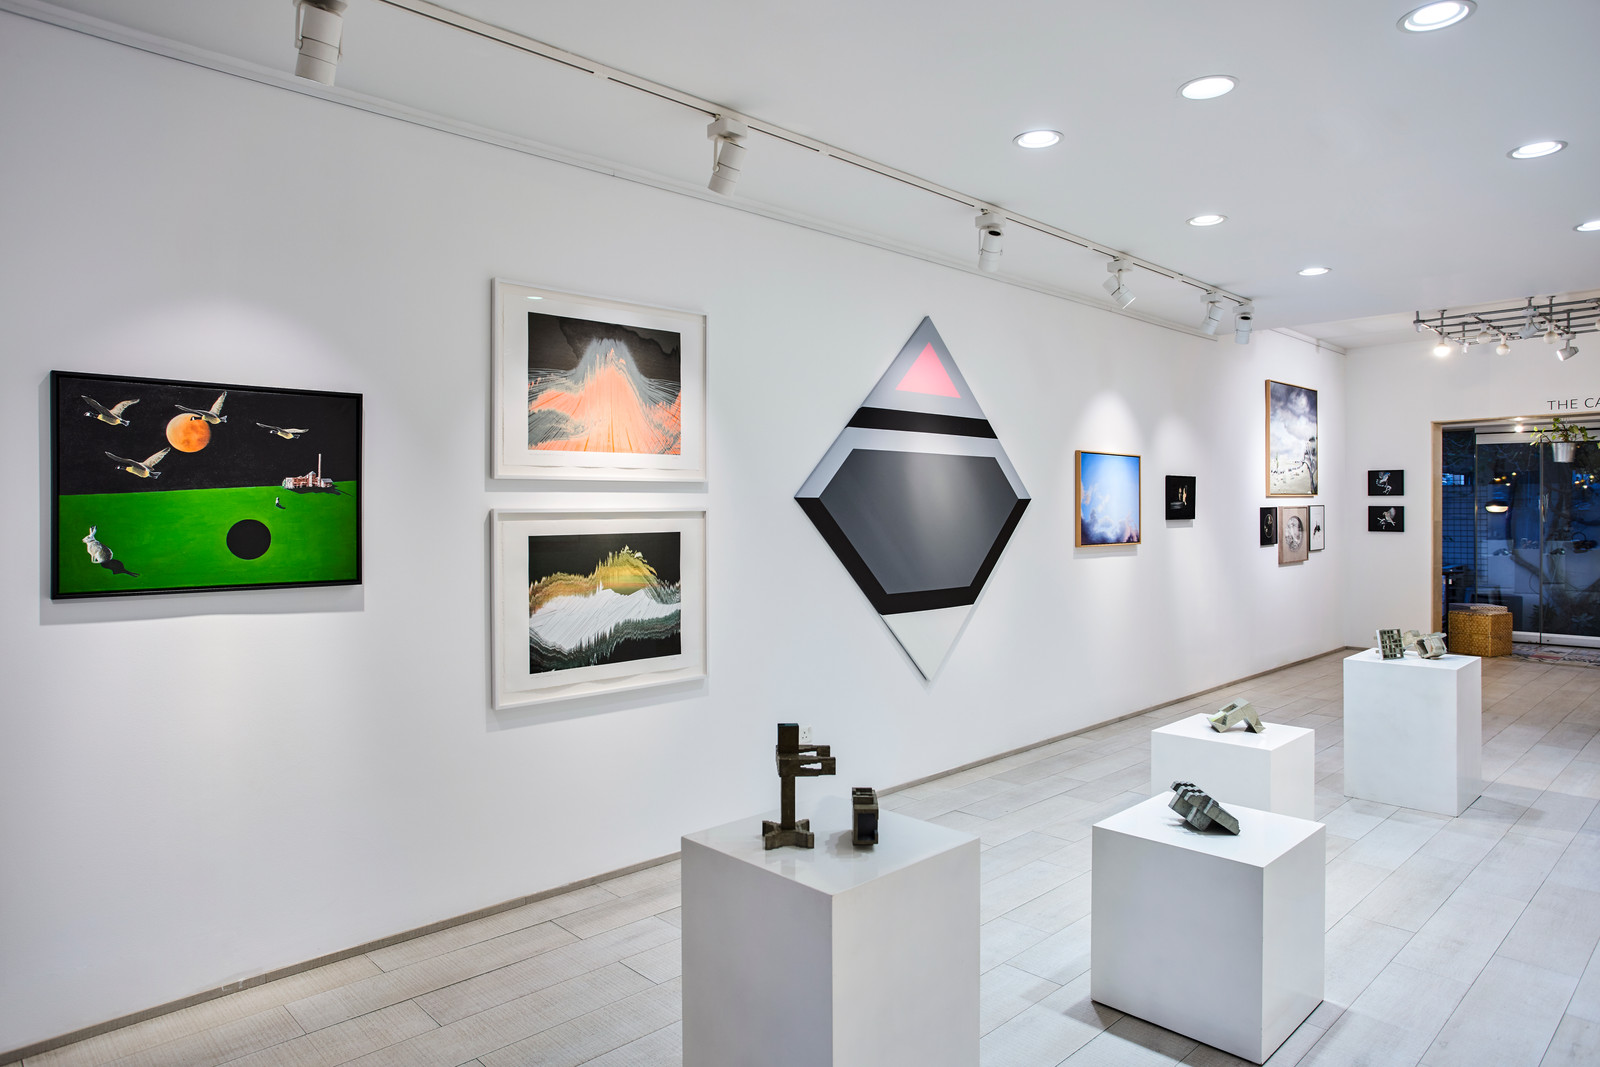 D Art Exhibition In Dubai : Oasis of calm in shattered region dubai steps out as art hub